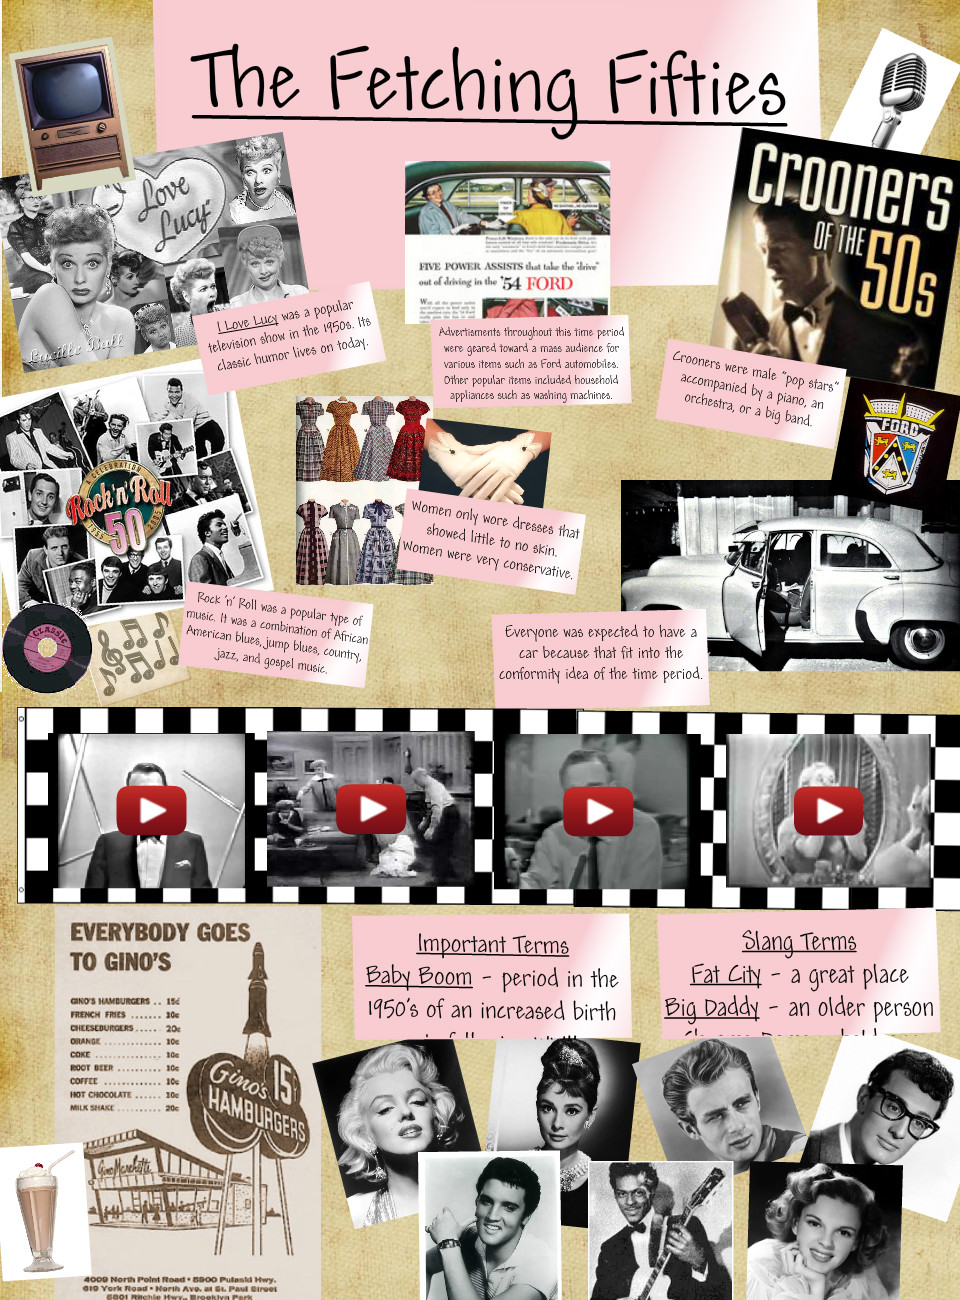 The Fetching Fifties